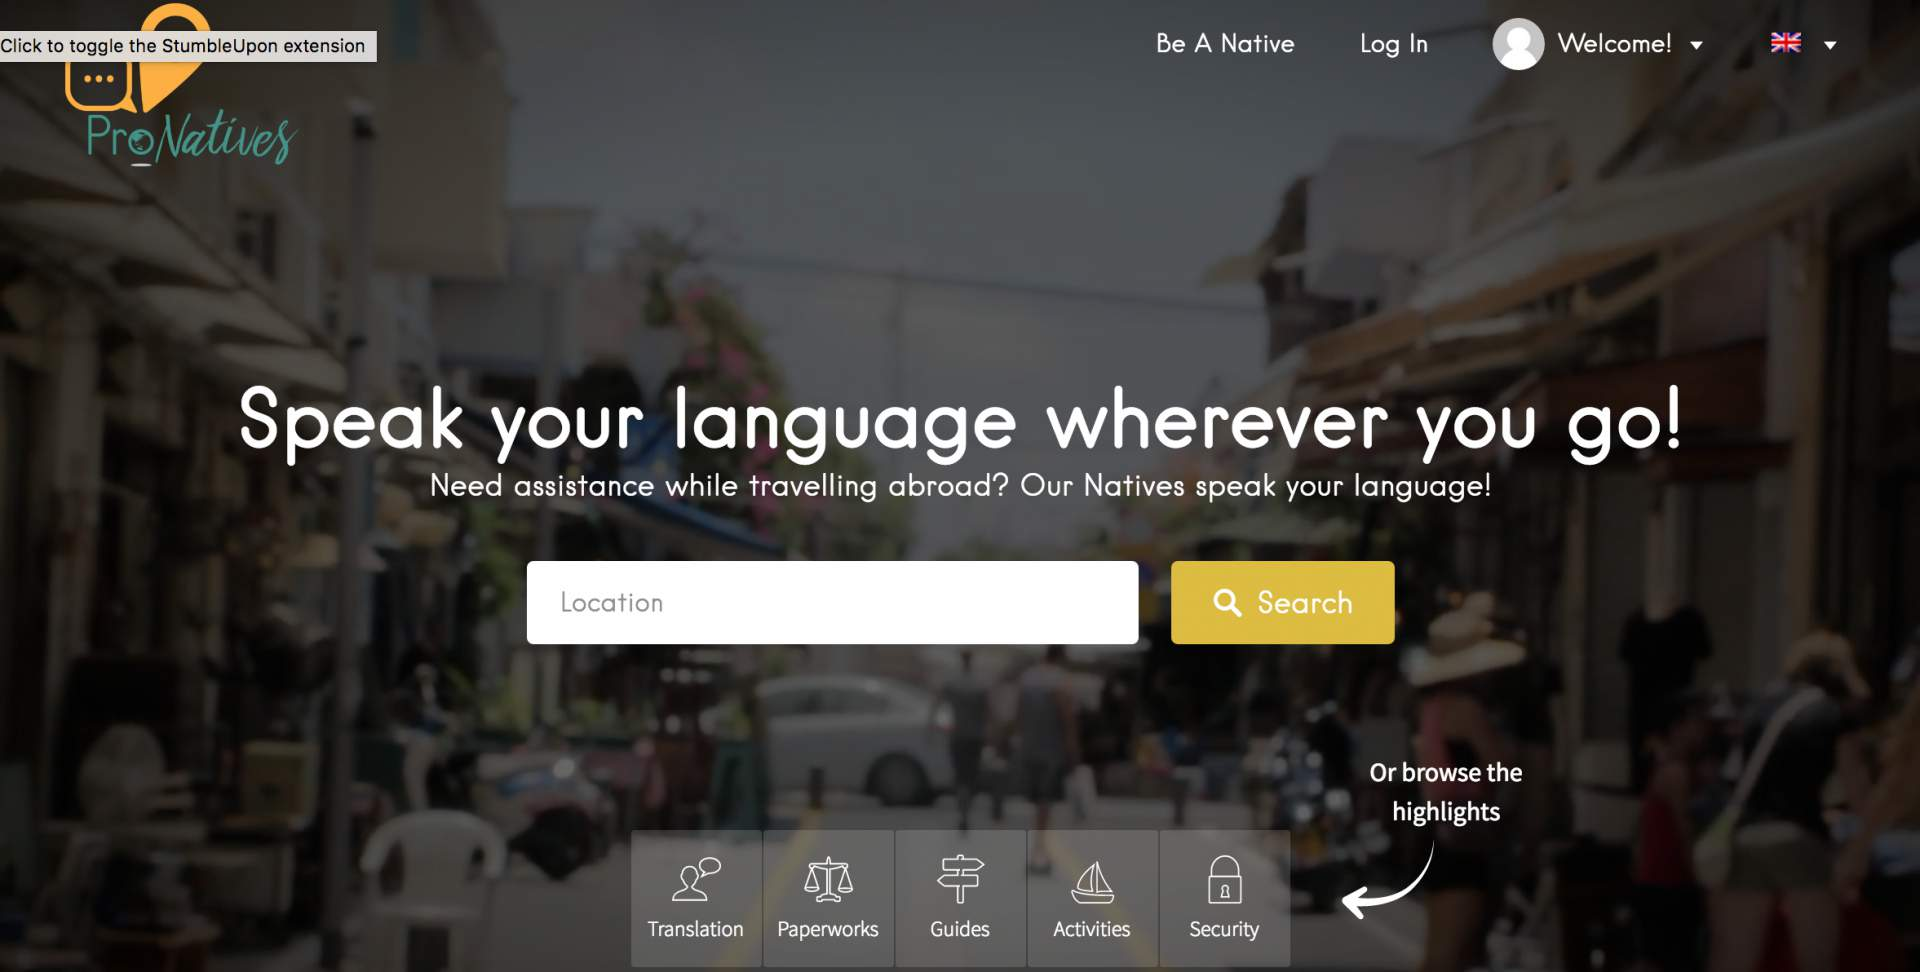 ProNatives 4 Travel Apps for Cultural Tourists from the Web Summit